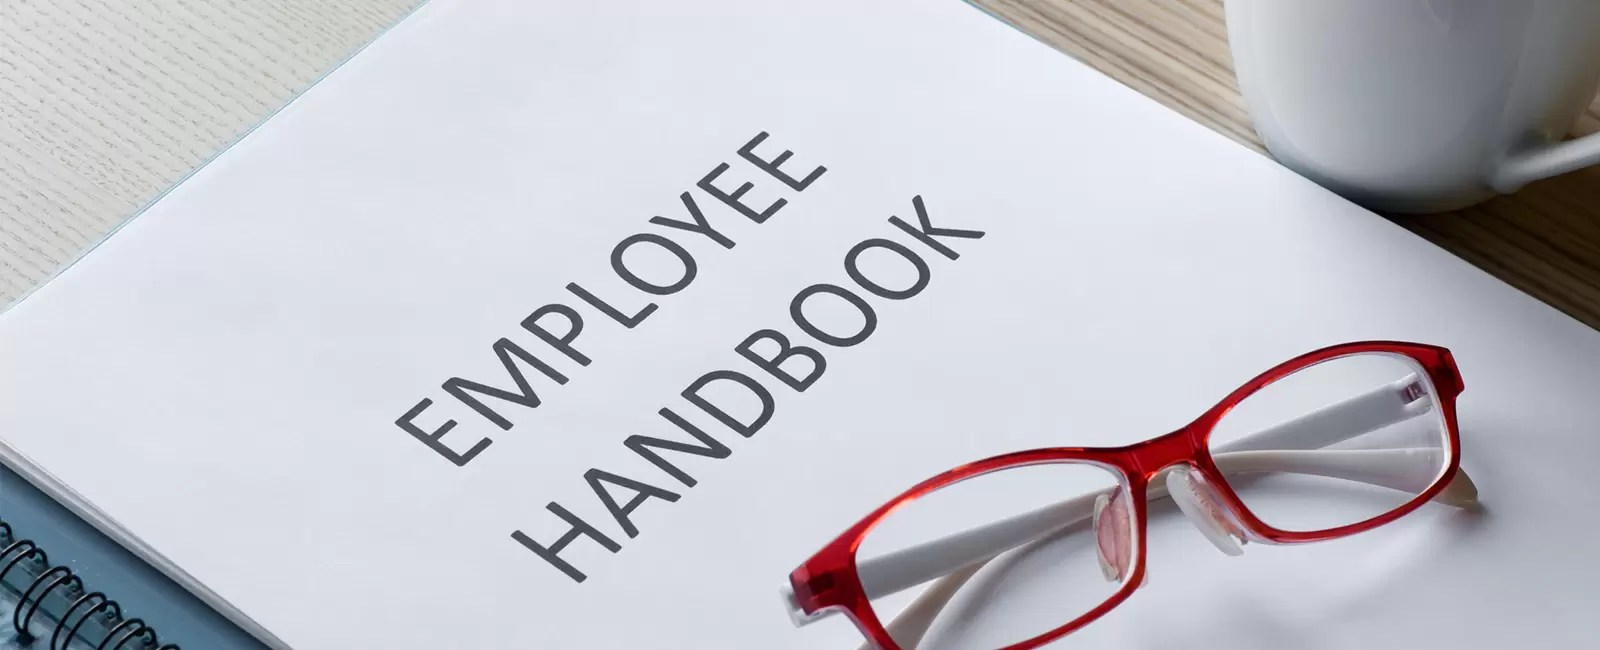 Business owners: 3 expensive lawsuits you can avoid with a good employee handbook